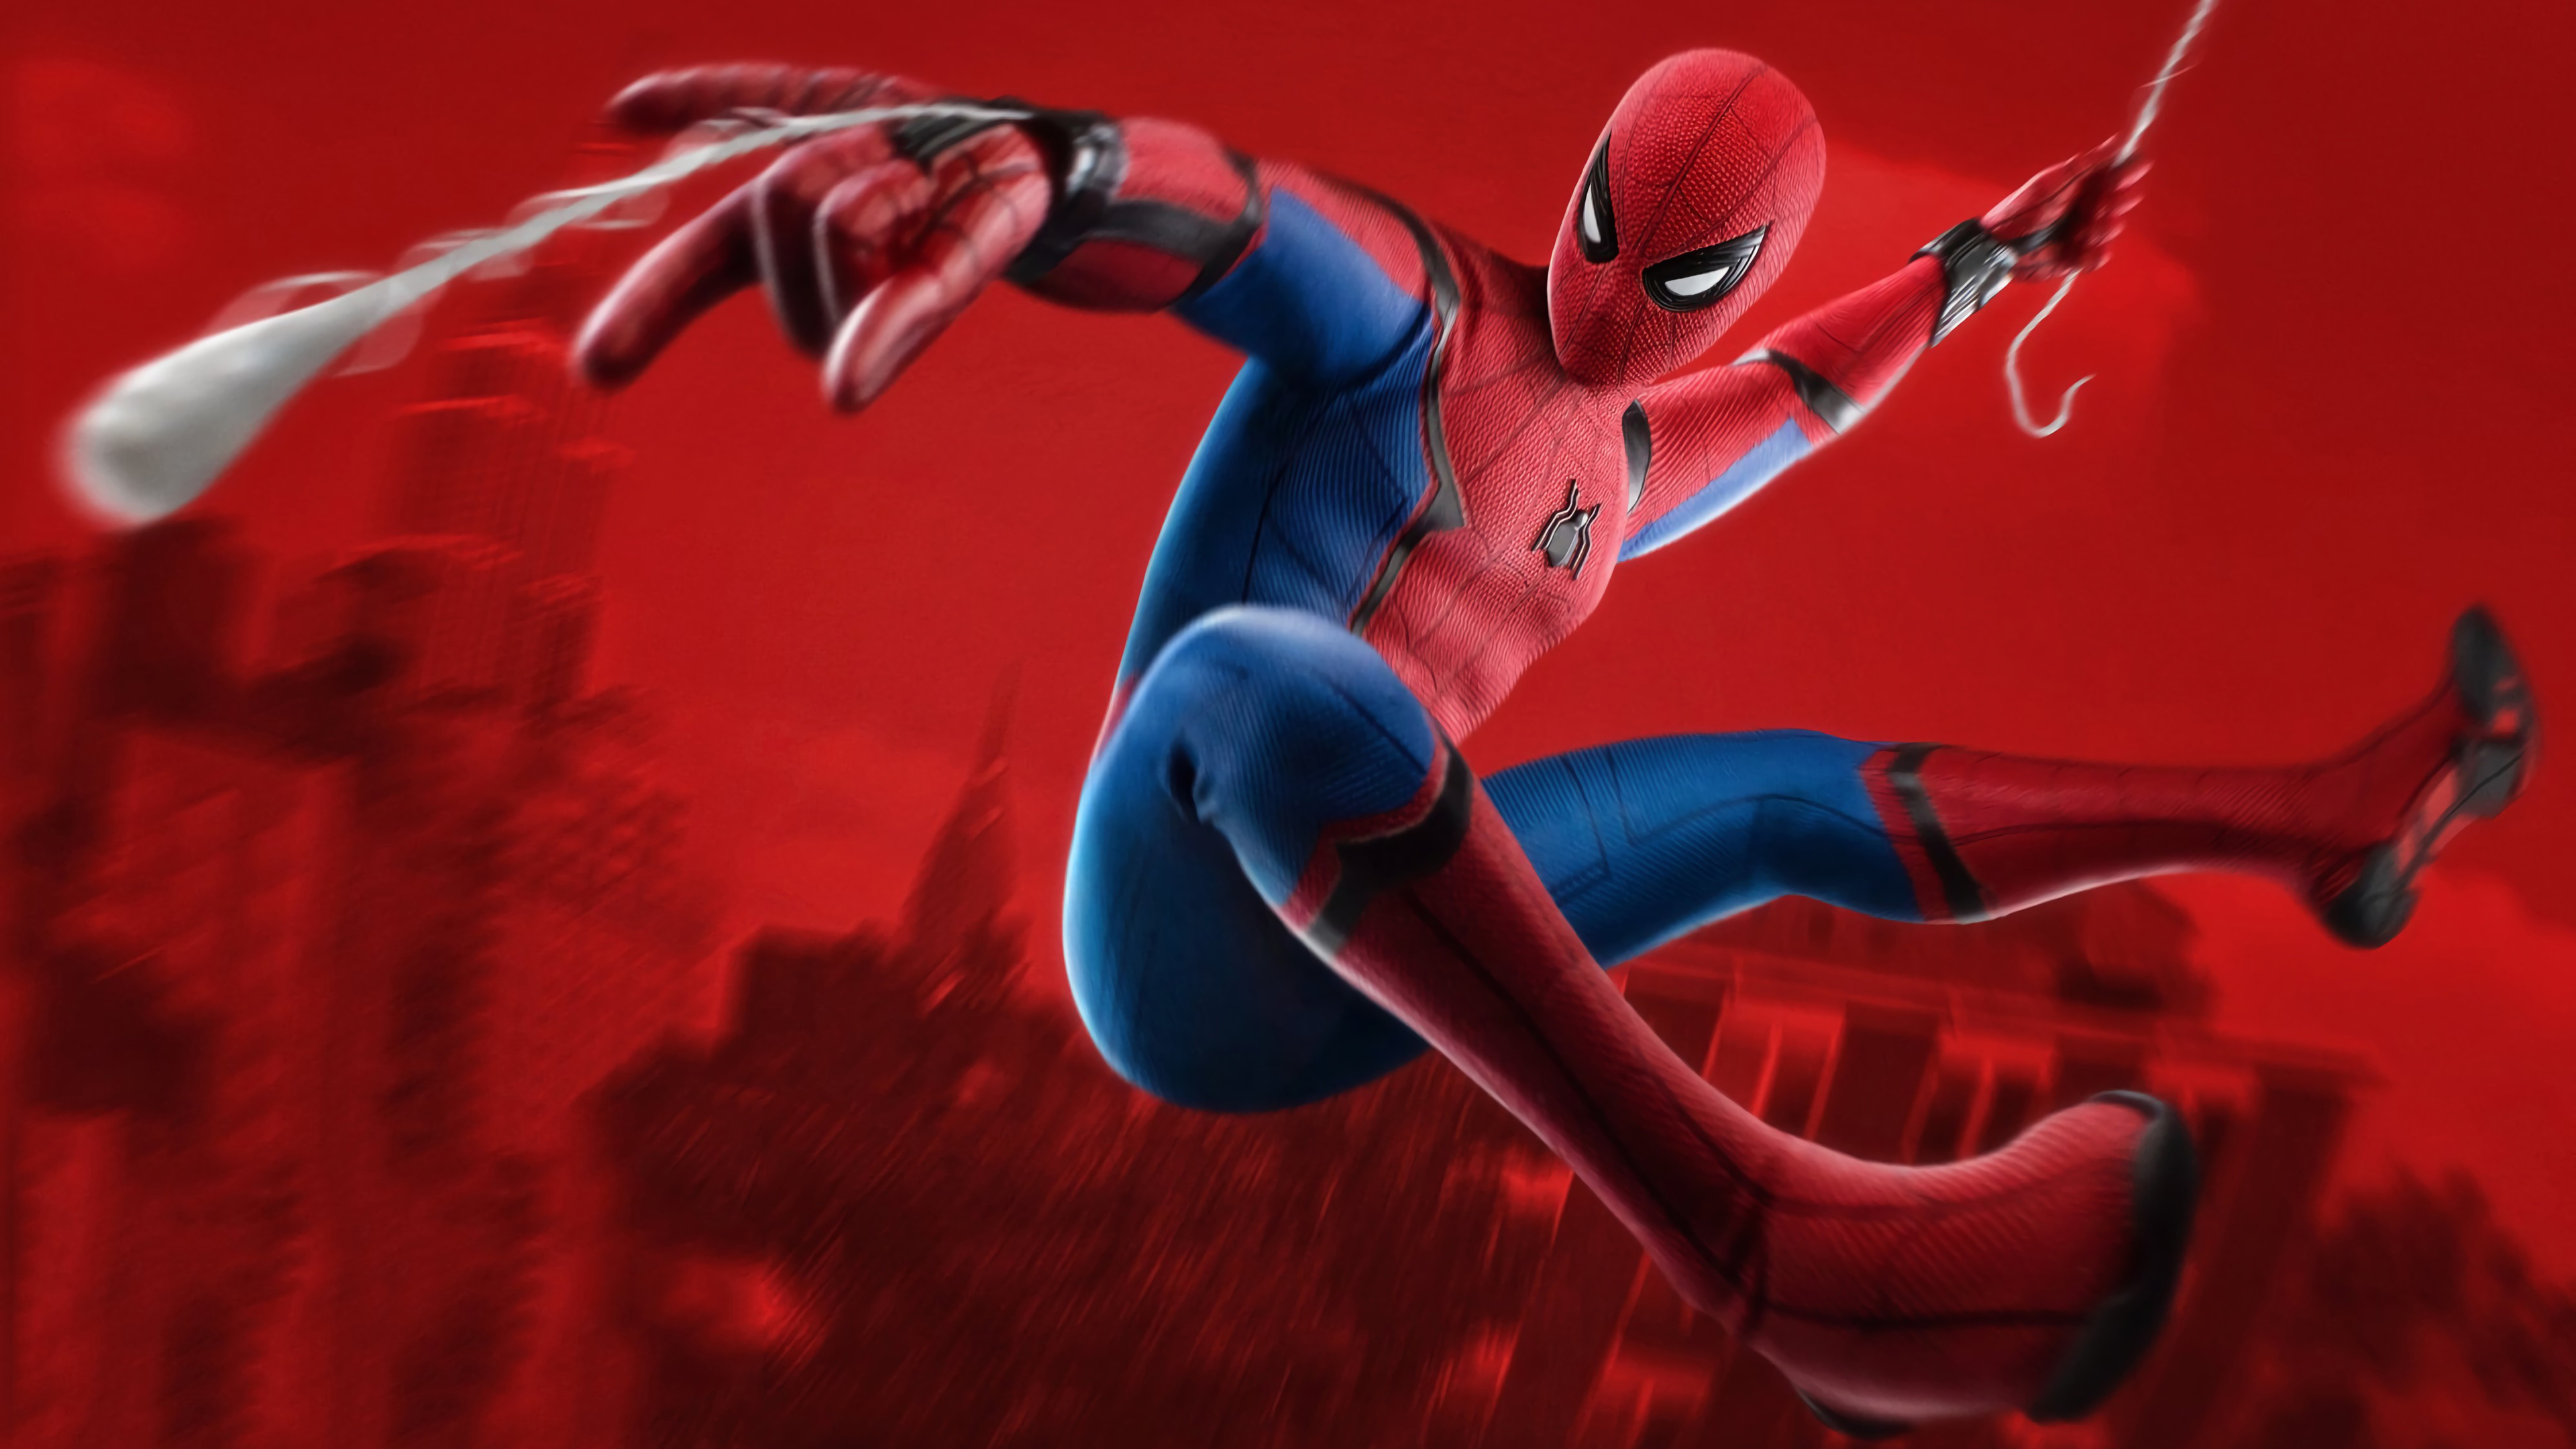 spiderman neww 1568054733 - Spiderman Neww - superheroes wallpapers, spiderman wallpapers, hd-wallpapers, digital art wallpapers, artwork wallpapers, 4k-wallpapers